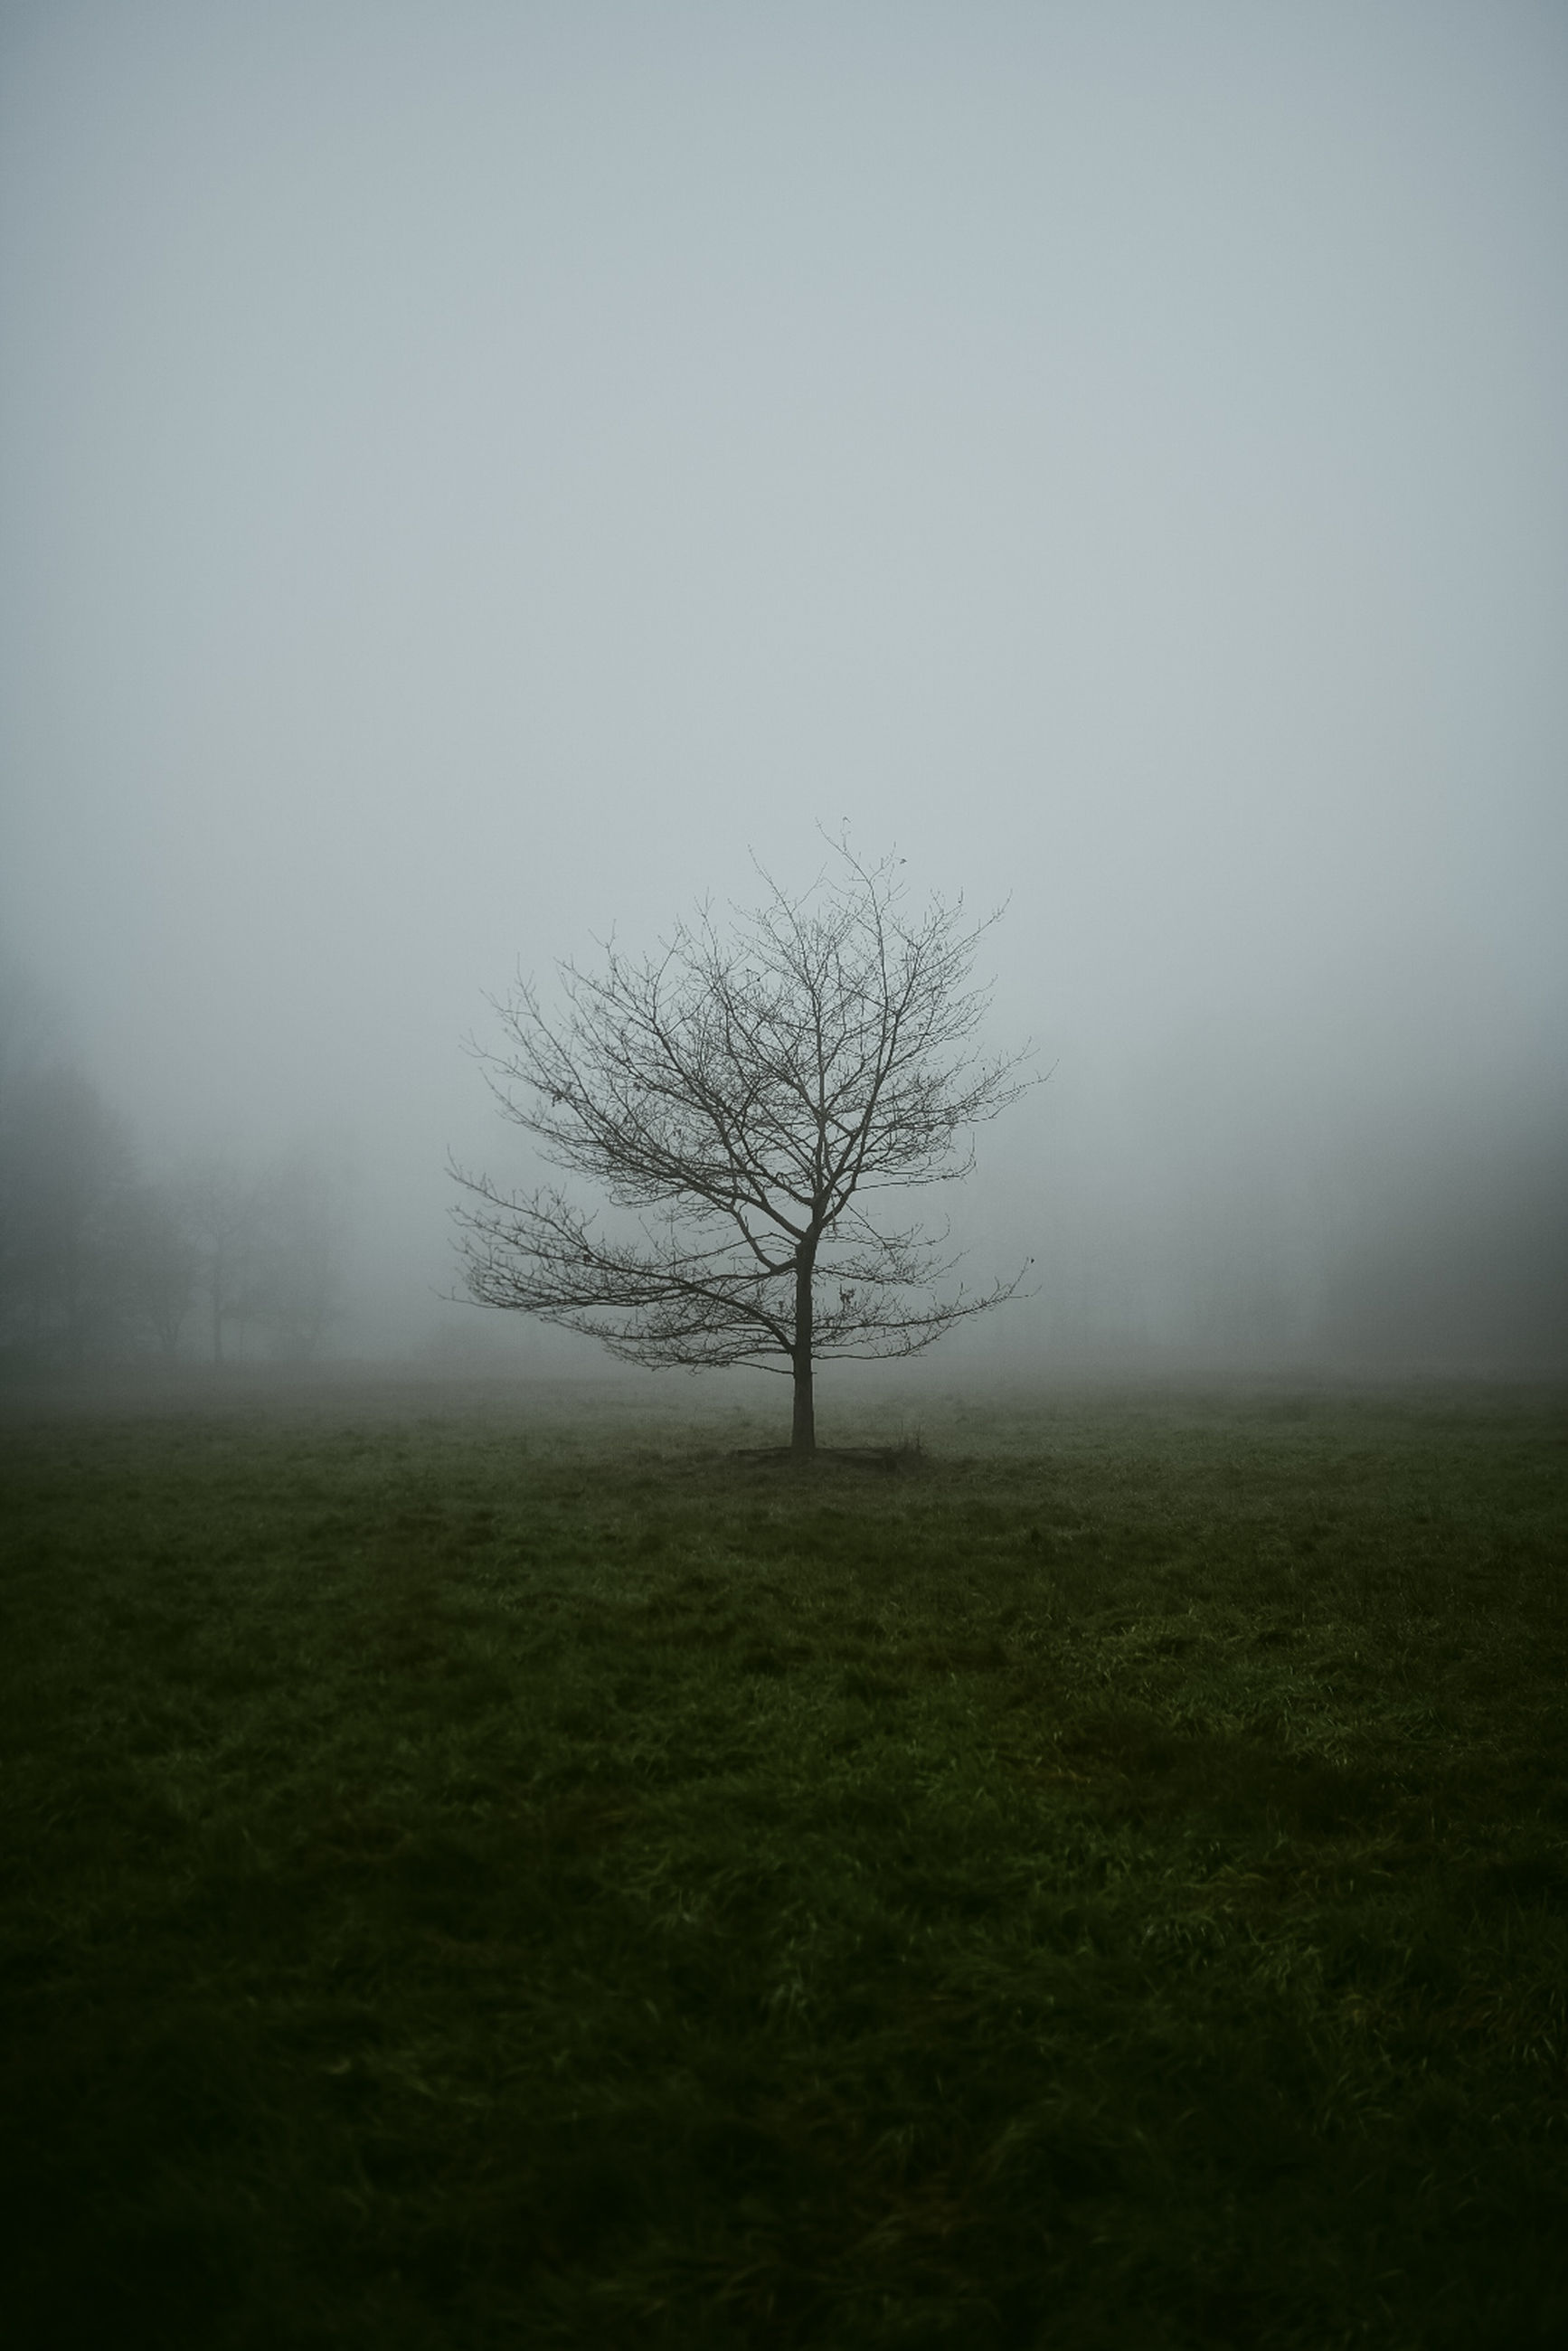 fog, tree, plant, beauty in nature, environment, tranquil scene, field, landscape, sky, bare tree, tranquility, solitude, land, non-urban scene, isolated, grass, scenics - nature, nature, no people, outdoors, hazy